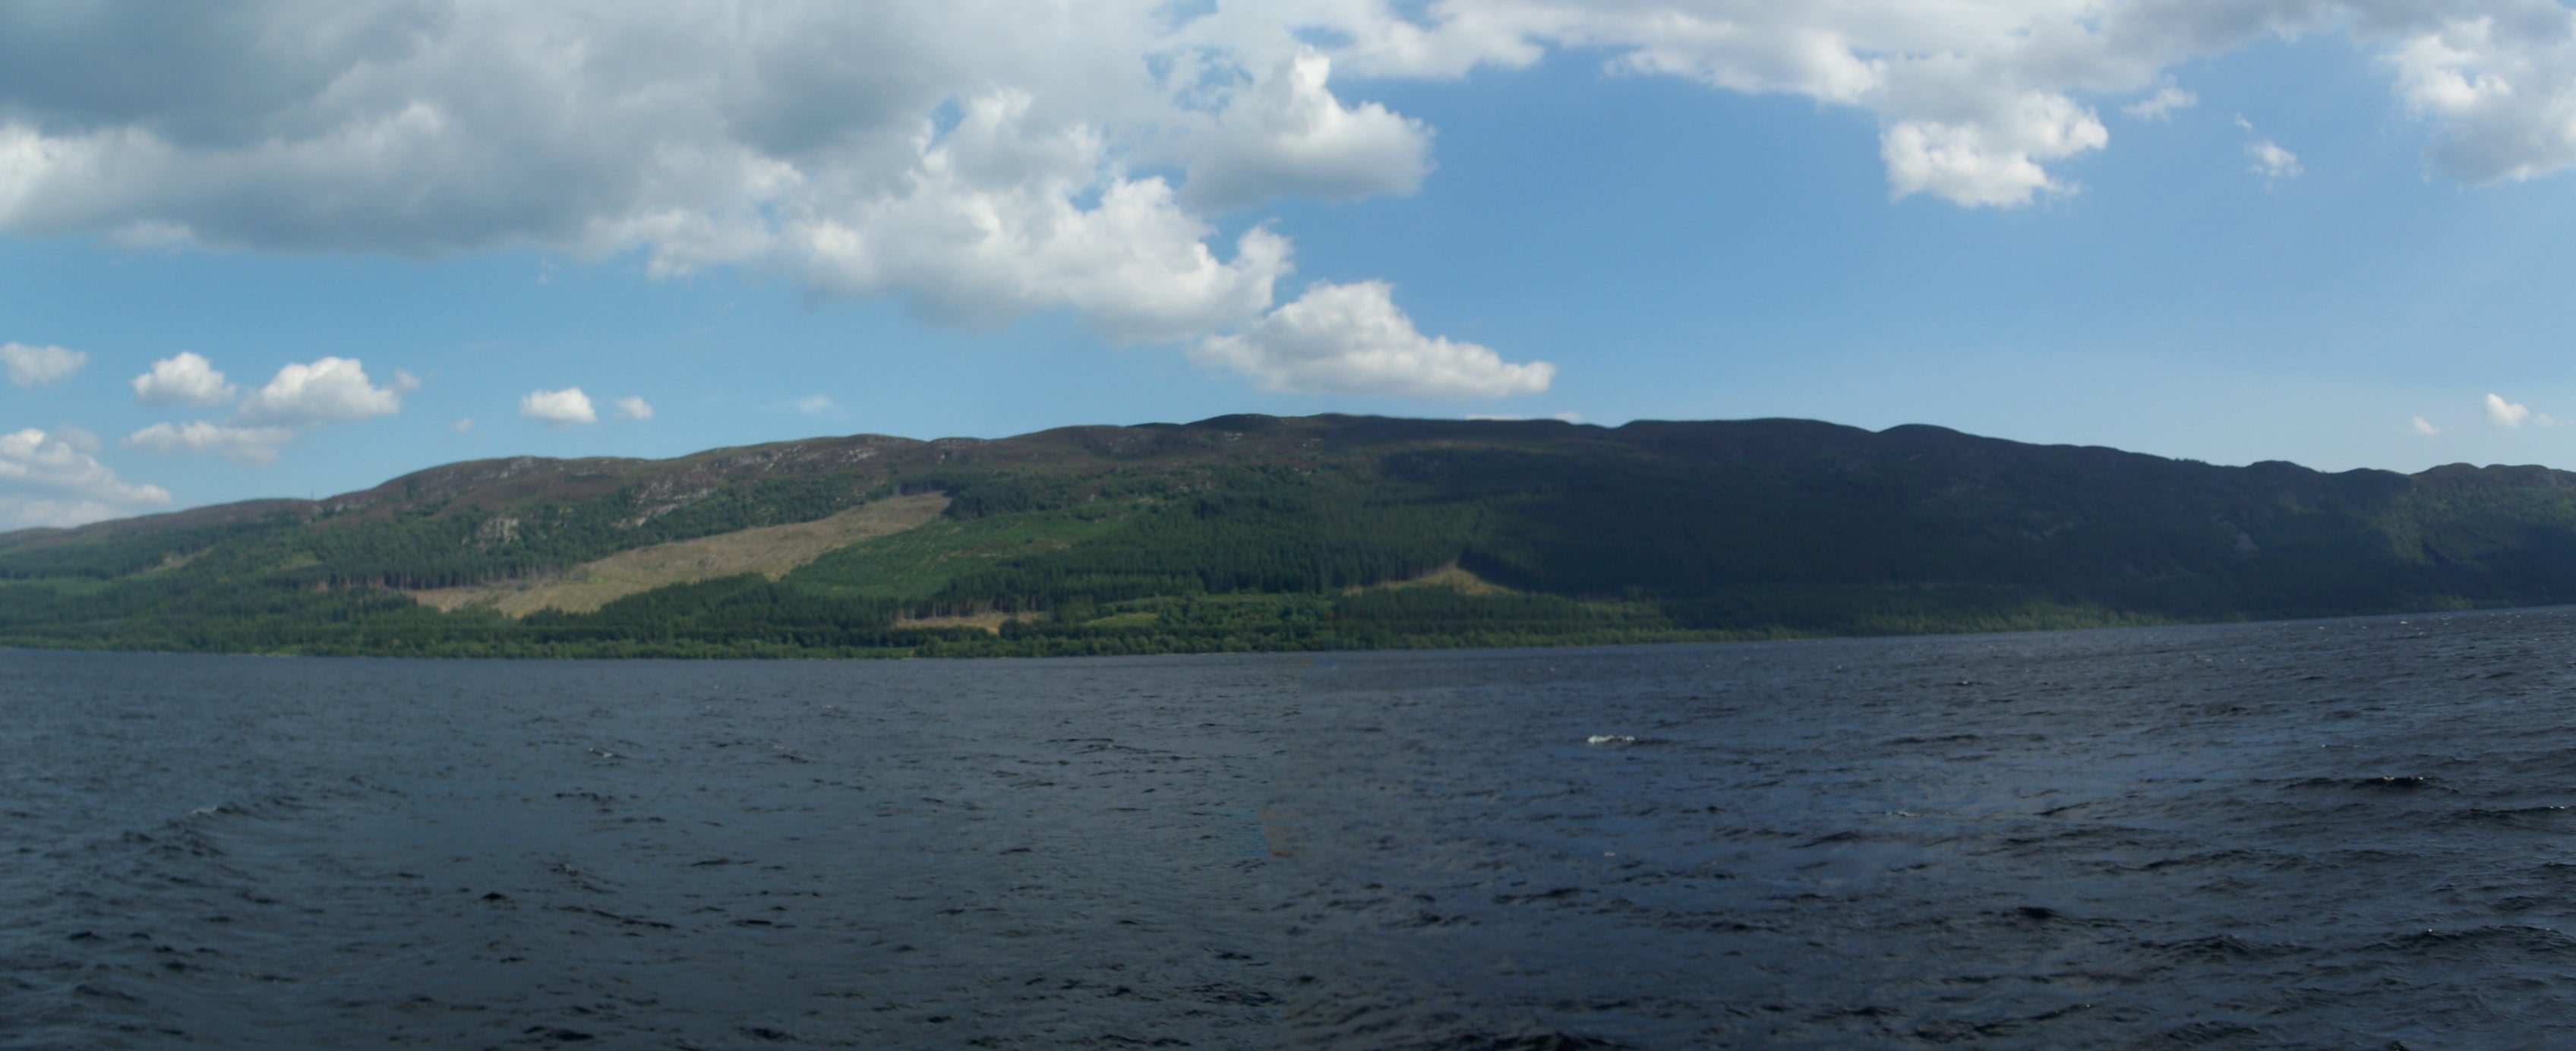 Island Loch Ness Loch Ness Panorama From a Ship